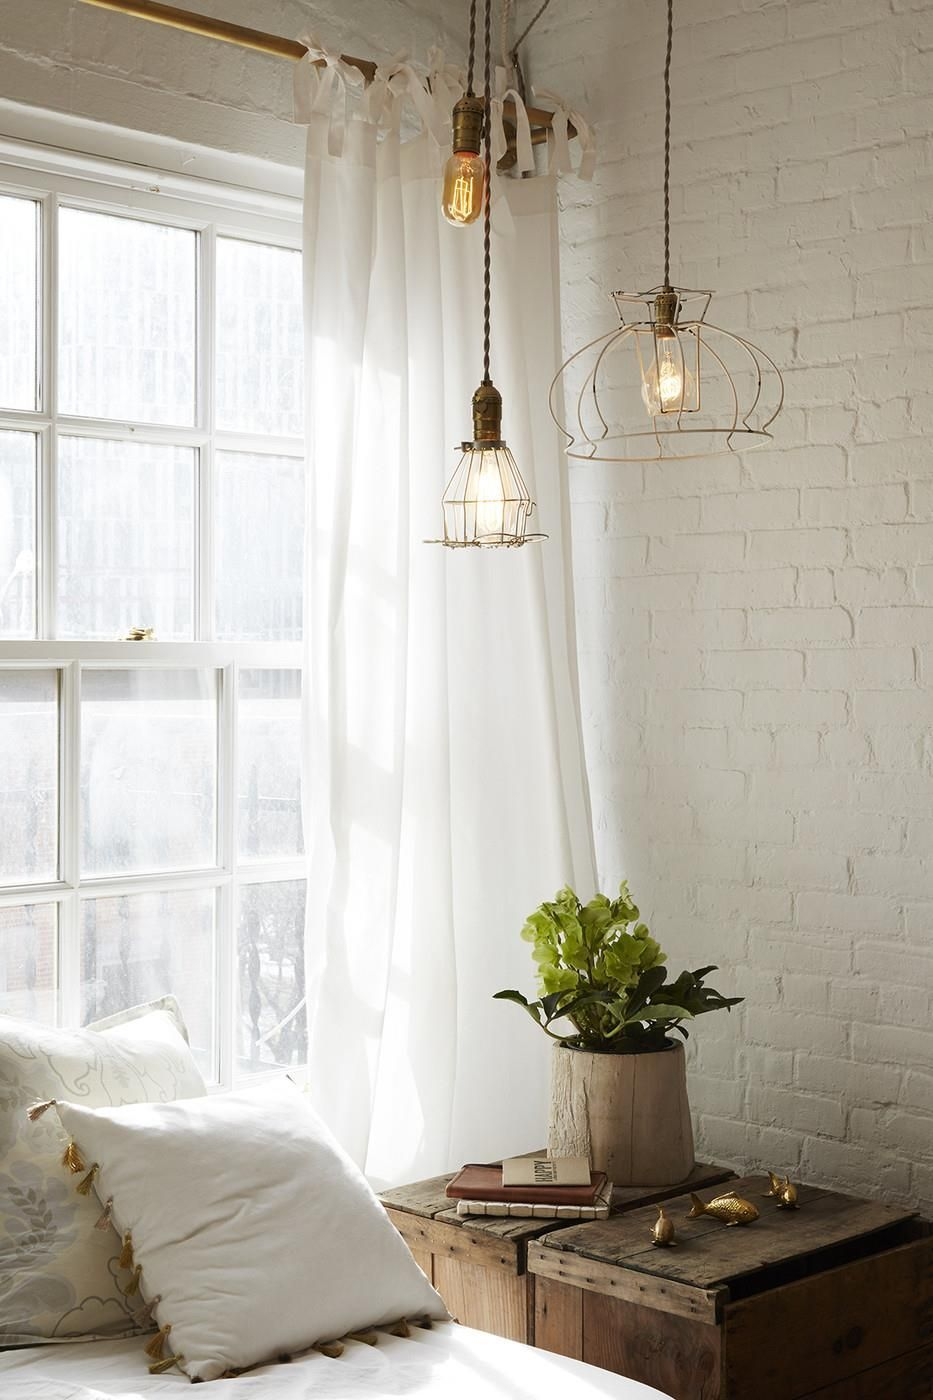 11 Affordable Ways To Add Character To Your Home Brick Interior Rustic Bedroom Painted Brick Wall